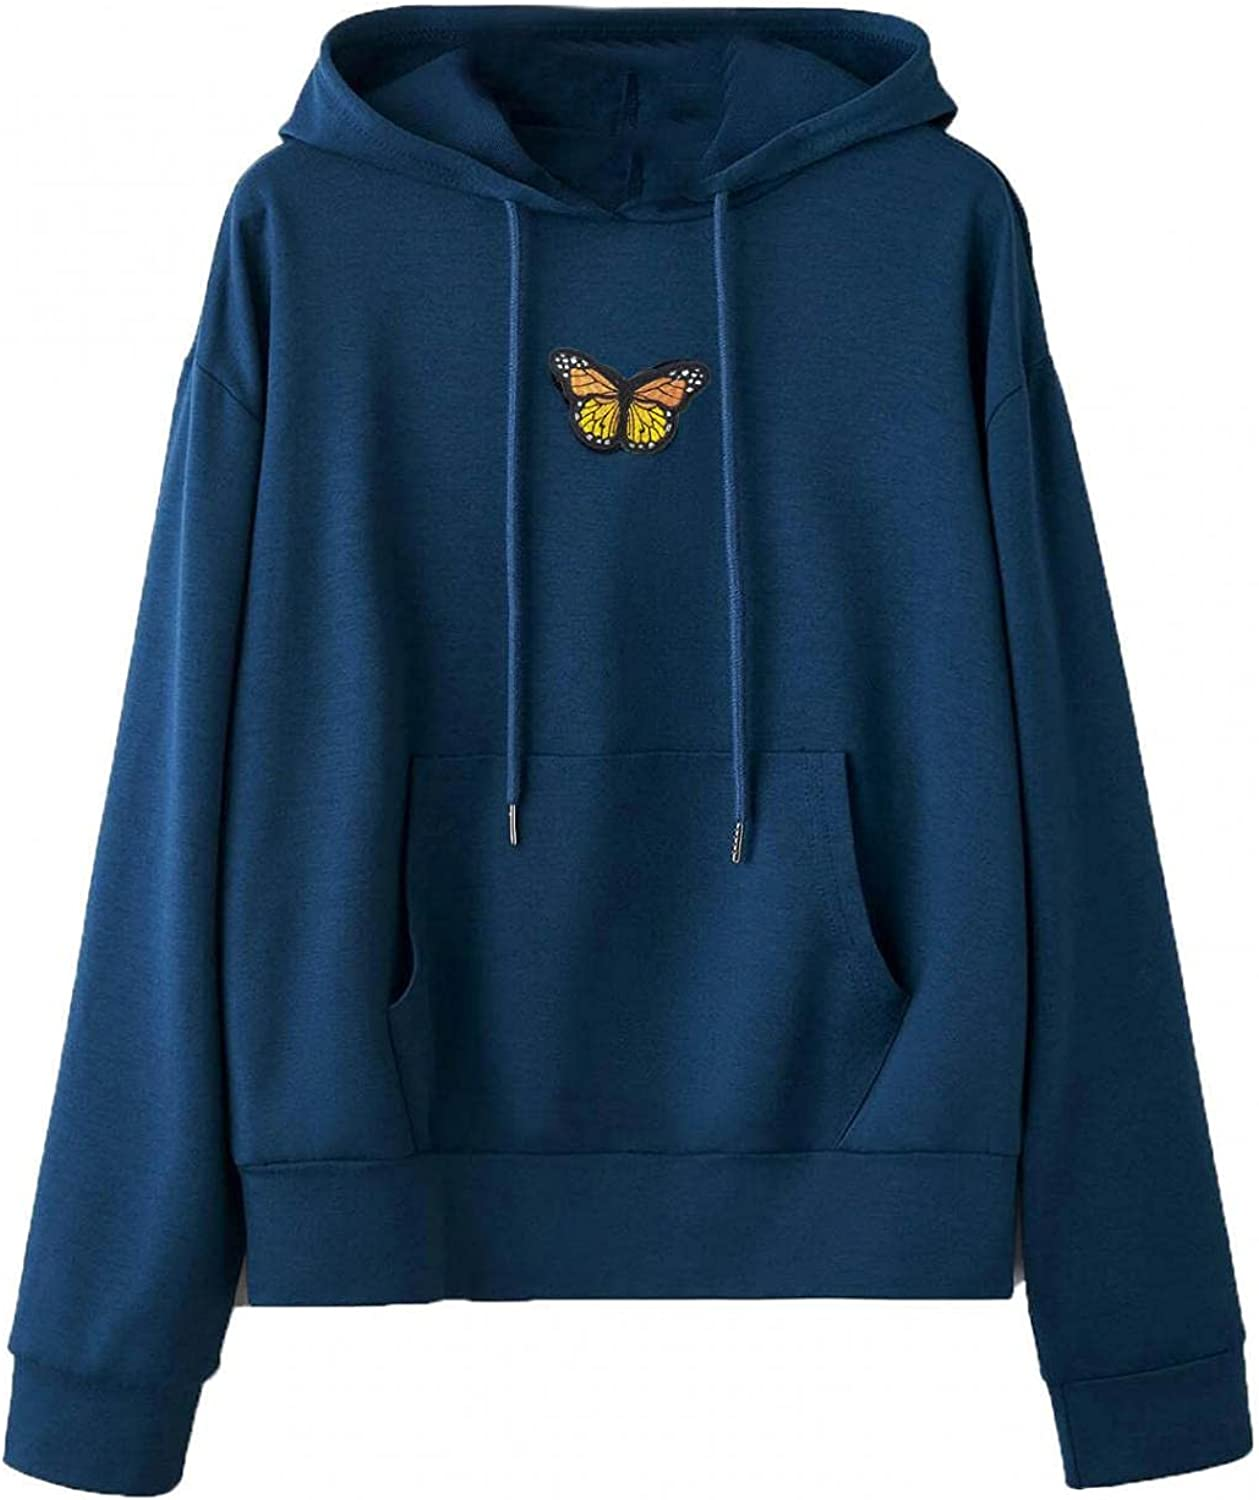 UOCUFY Hoodies for Women, Womens Sweatshirts Cute Printing Long Sleeve Plus Size Pullover Hoodies Autumn and Winter